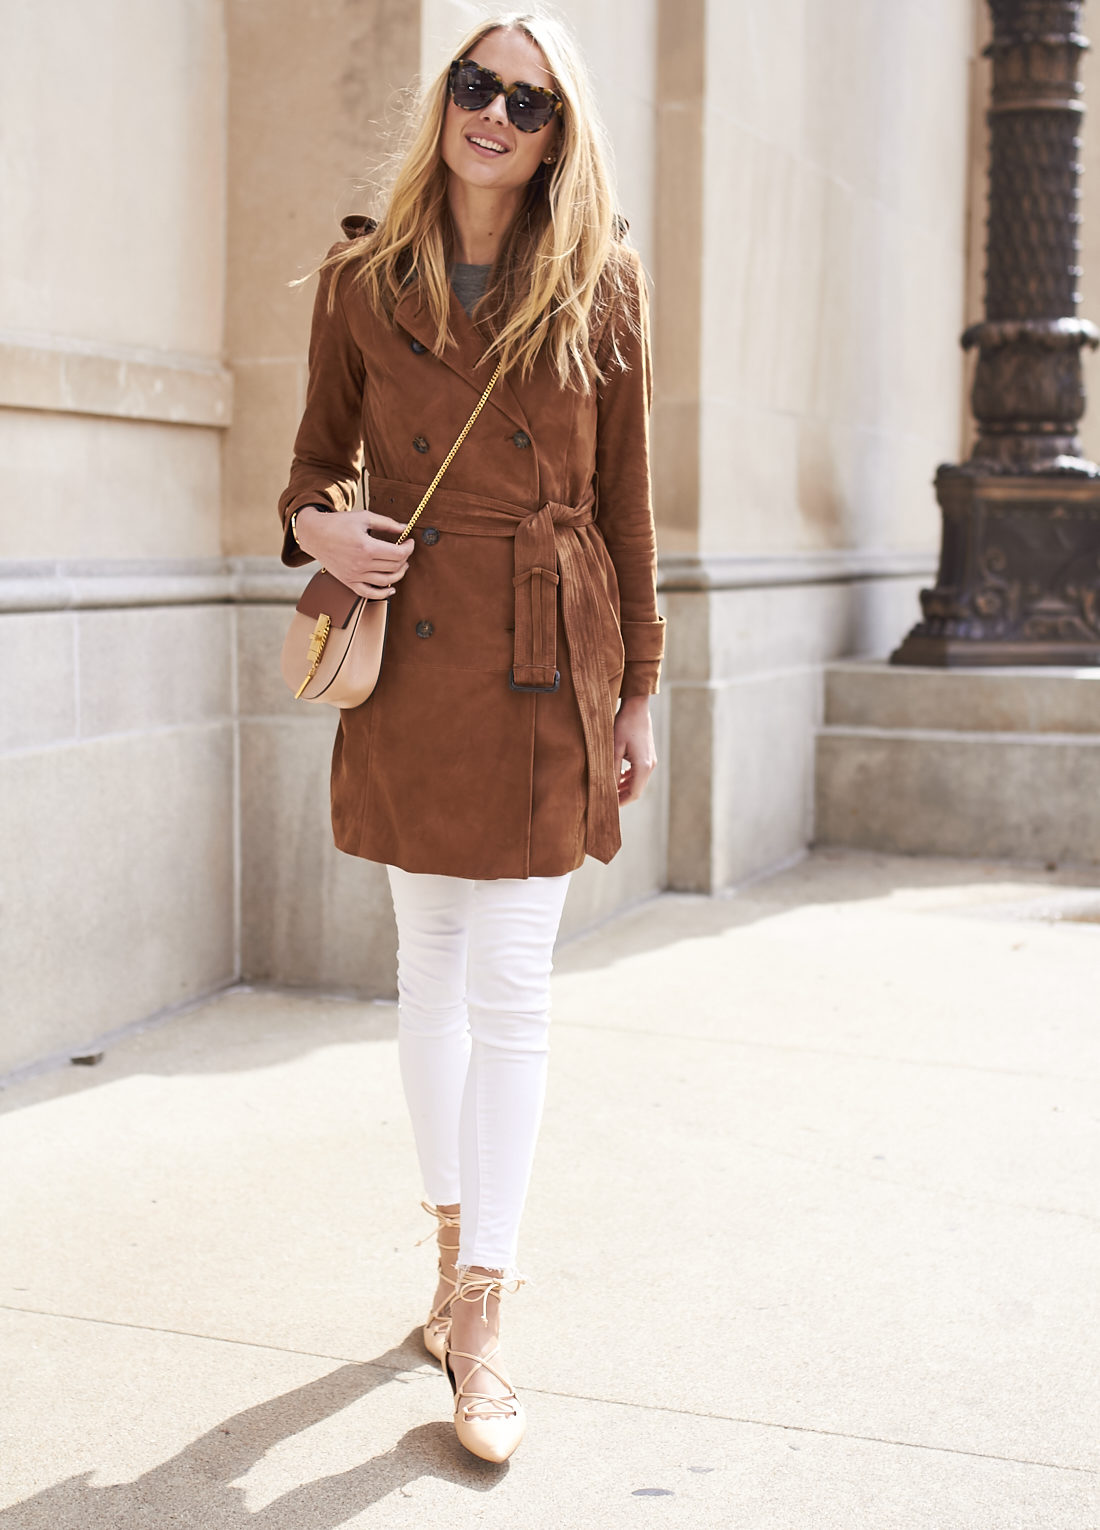 fashion-jackson-banana-republic-suede-trench-coat-chloe-drew-crossbody-karen-walker-number-one-sunglasses-white-skinny-jeans-nude-lace-up-flats